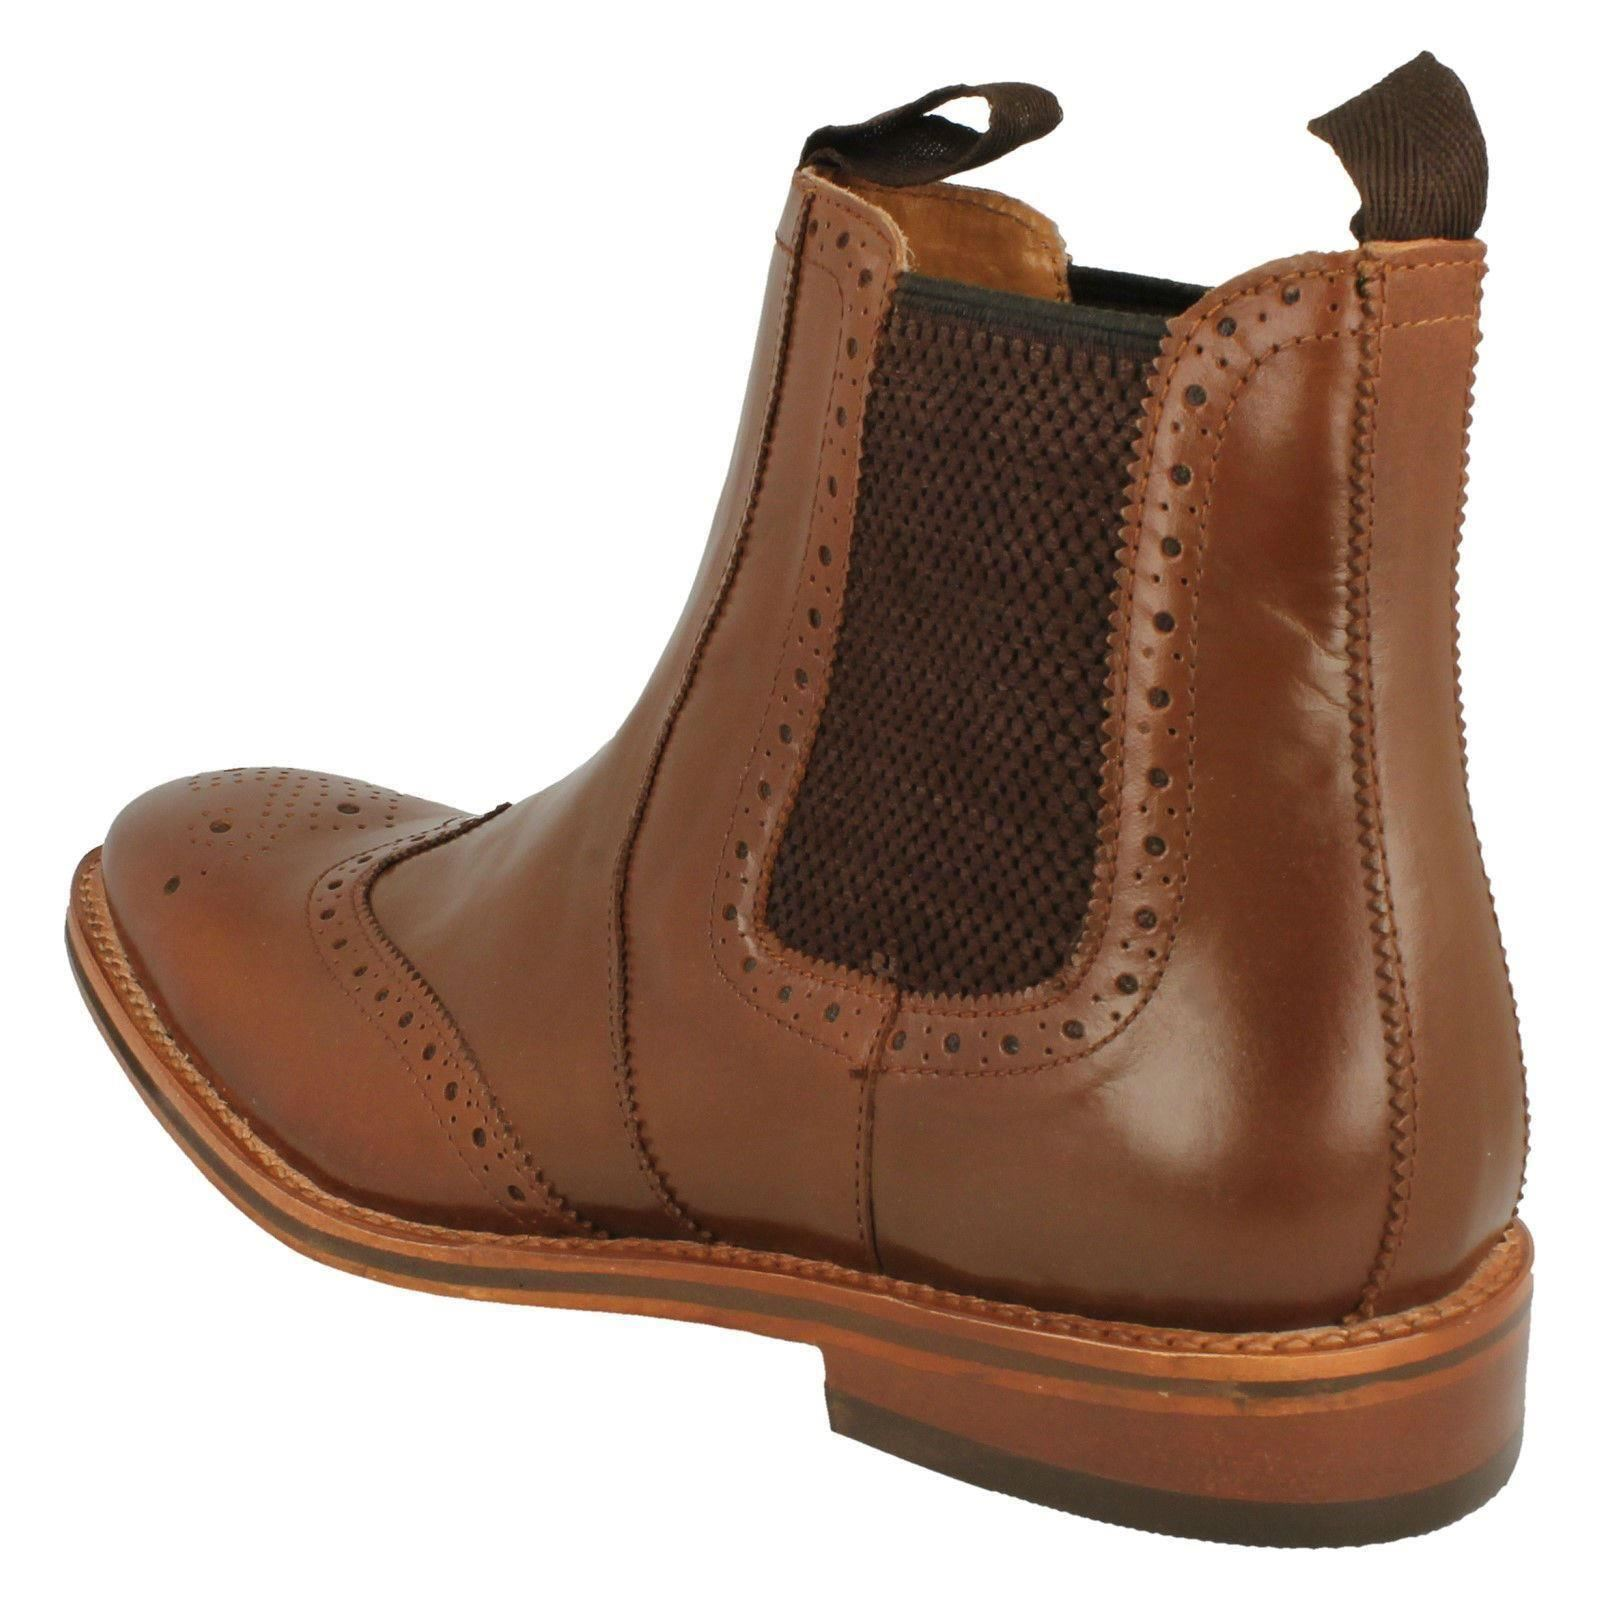 Uomo Catesby MCATESCW158 Pull On Brogue Ankle Boot MCATESCW158 Catesby  4375 85ba13